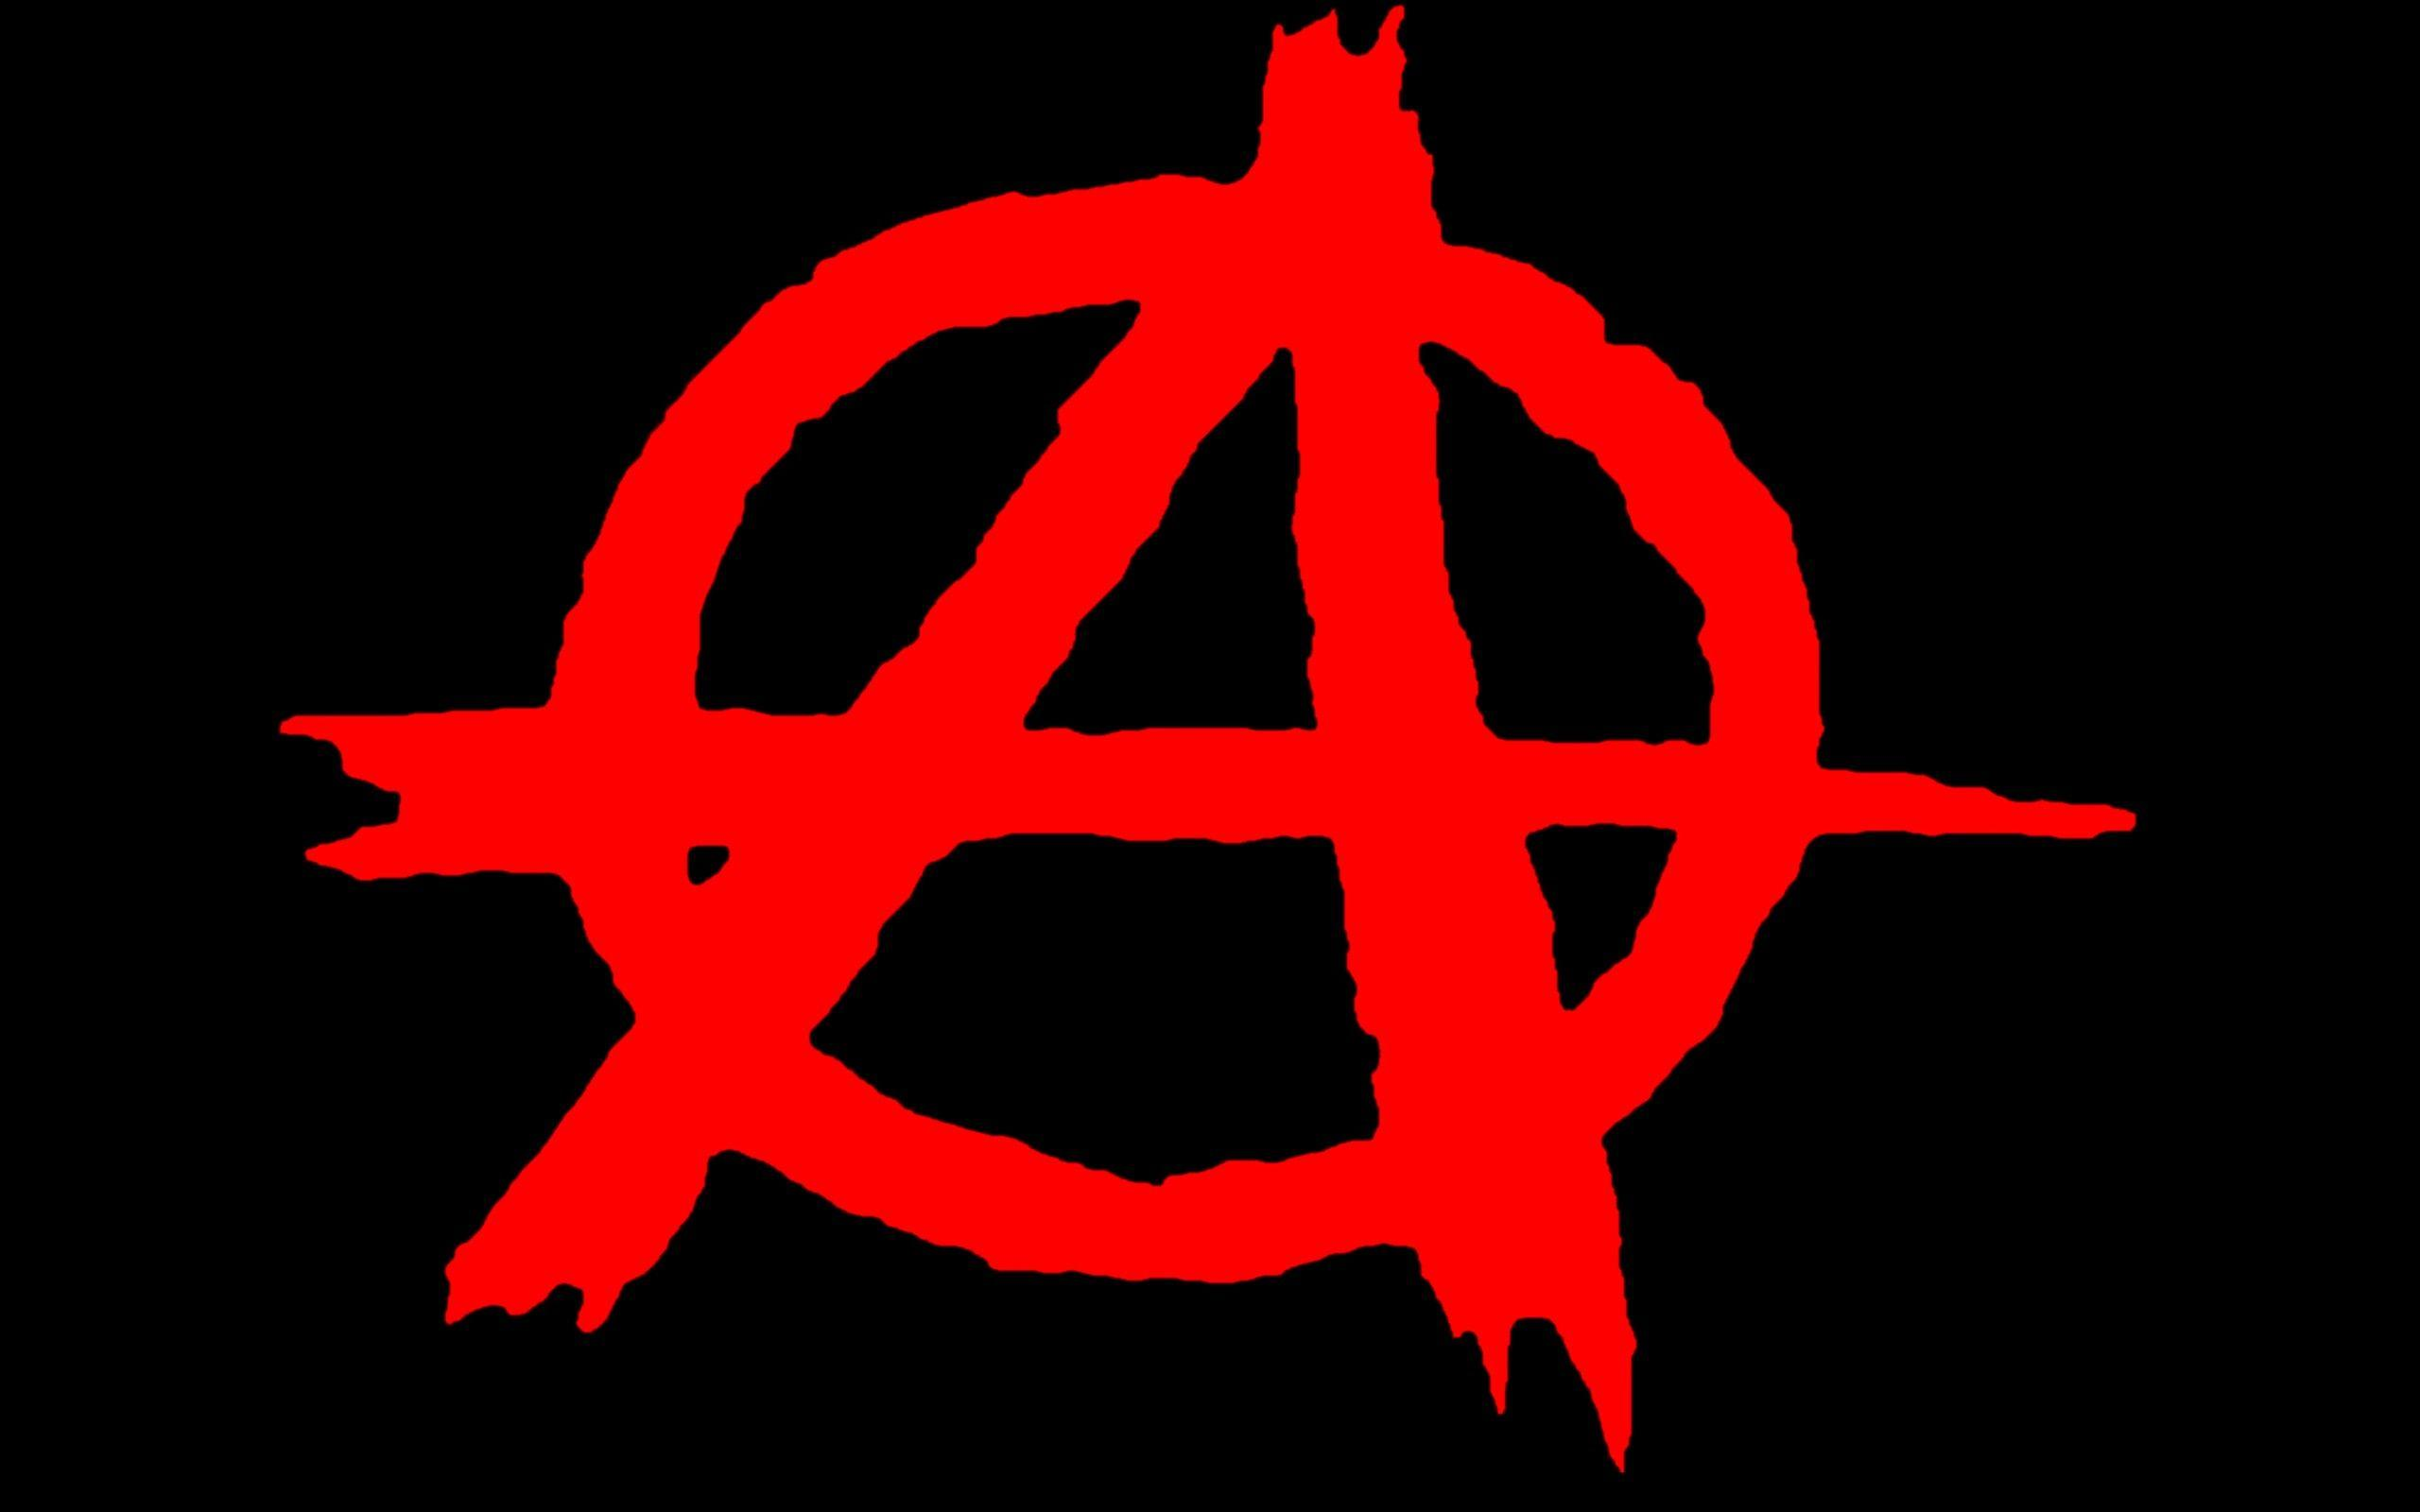 Anarchy Symbol Wallpapers - Wallpaper cave